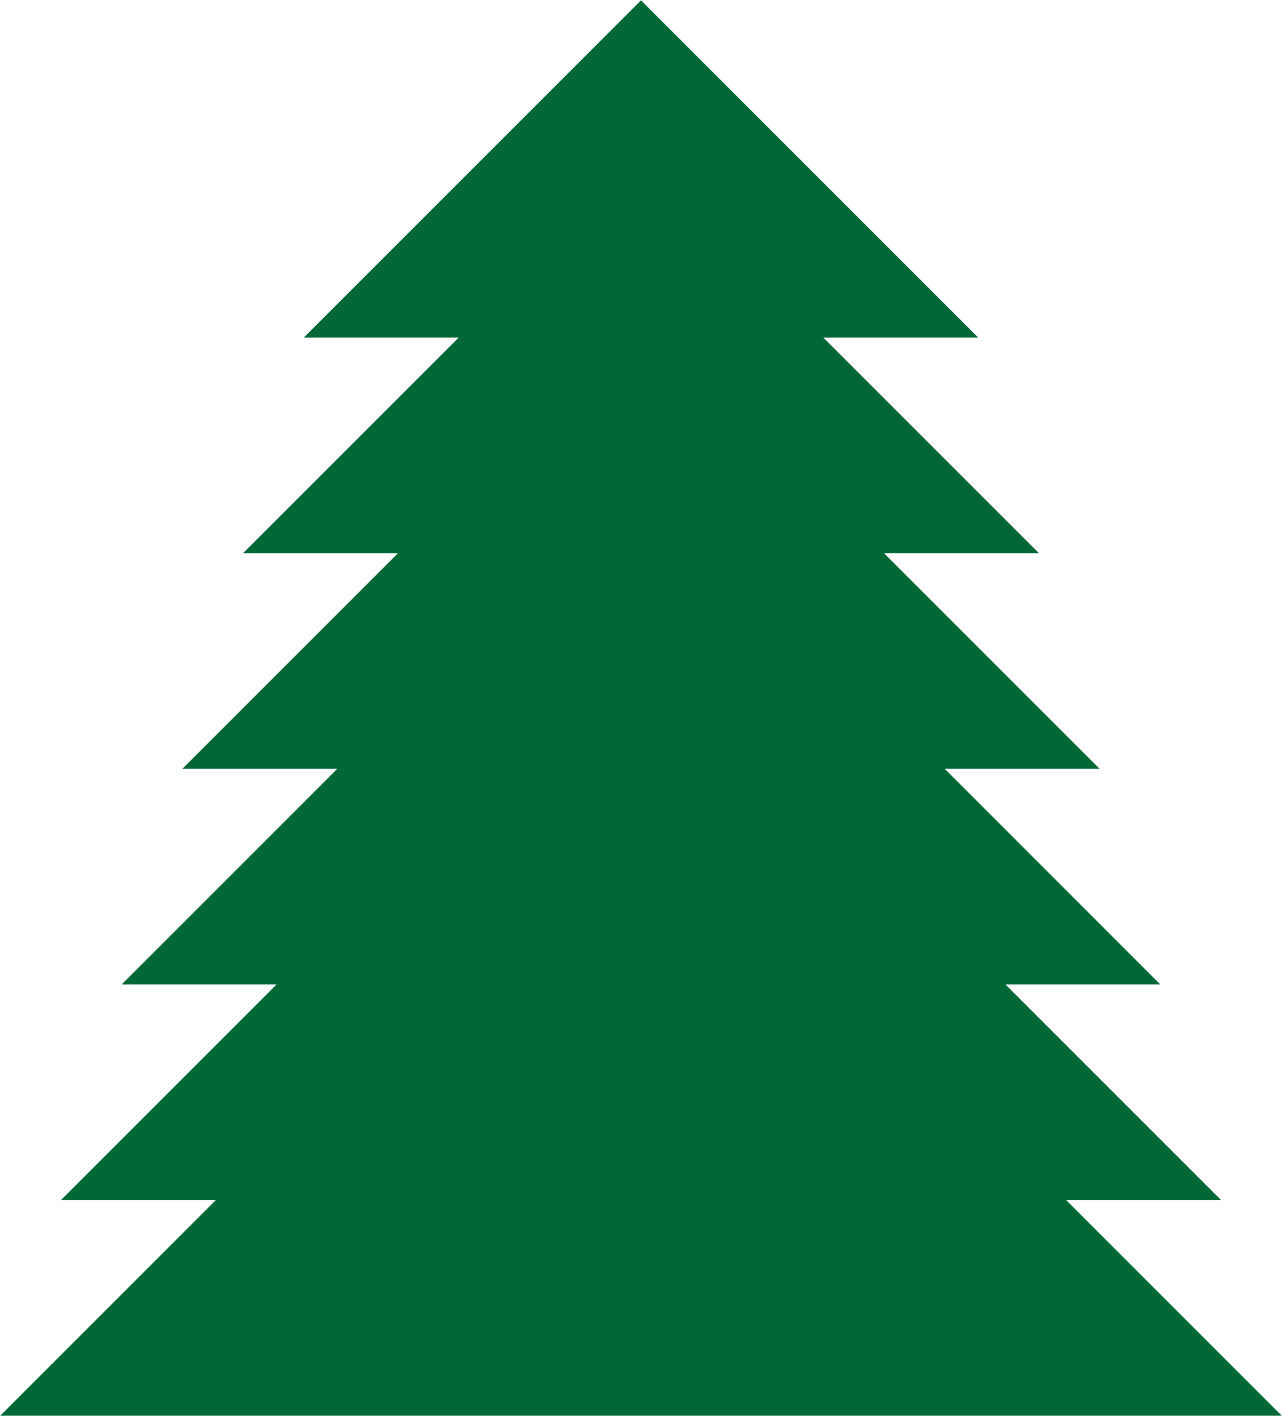 Pine tree clipart a simple green tree